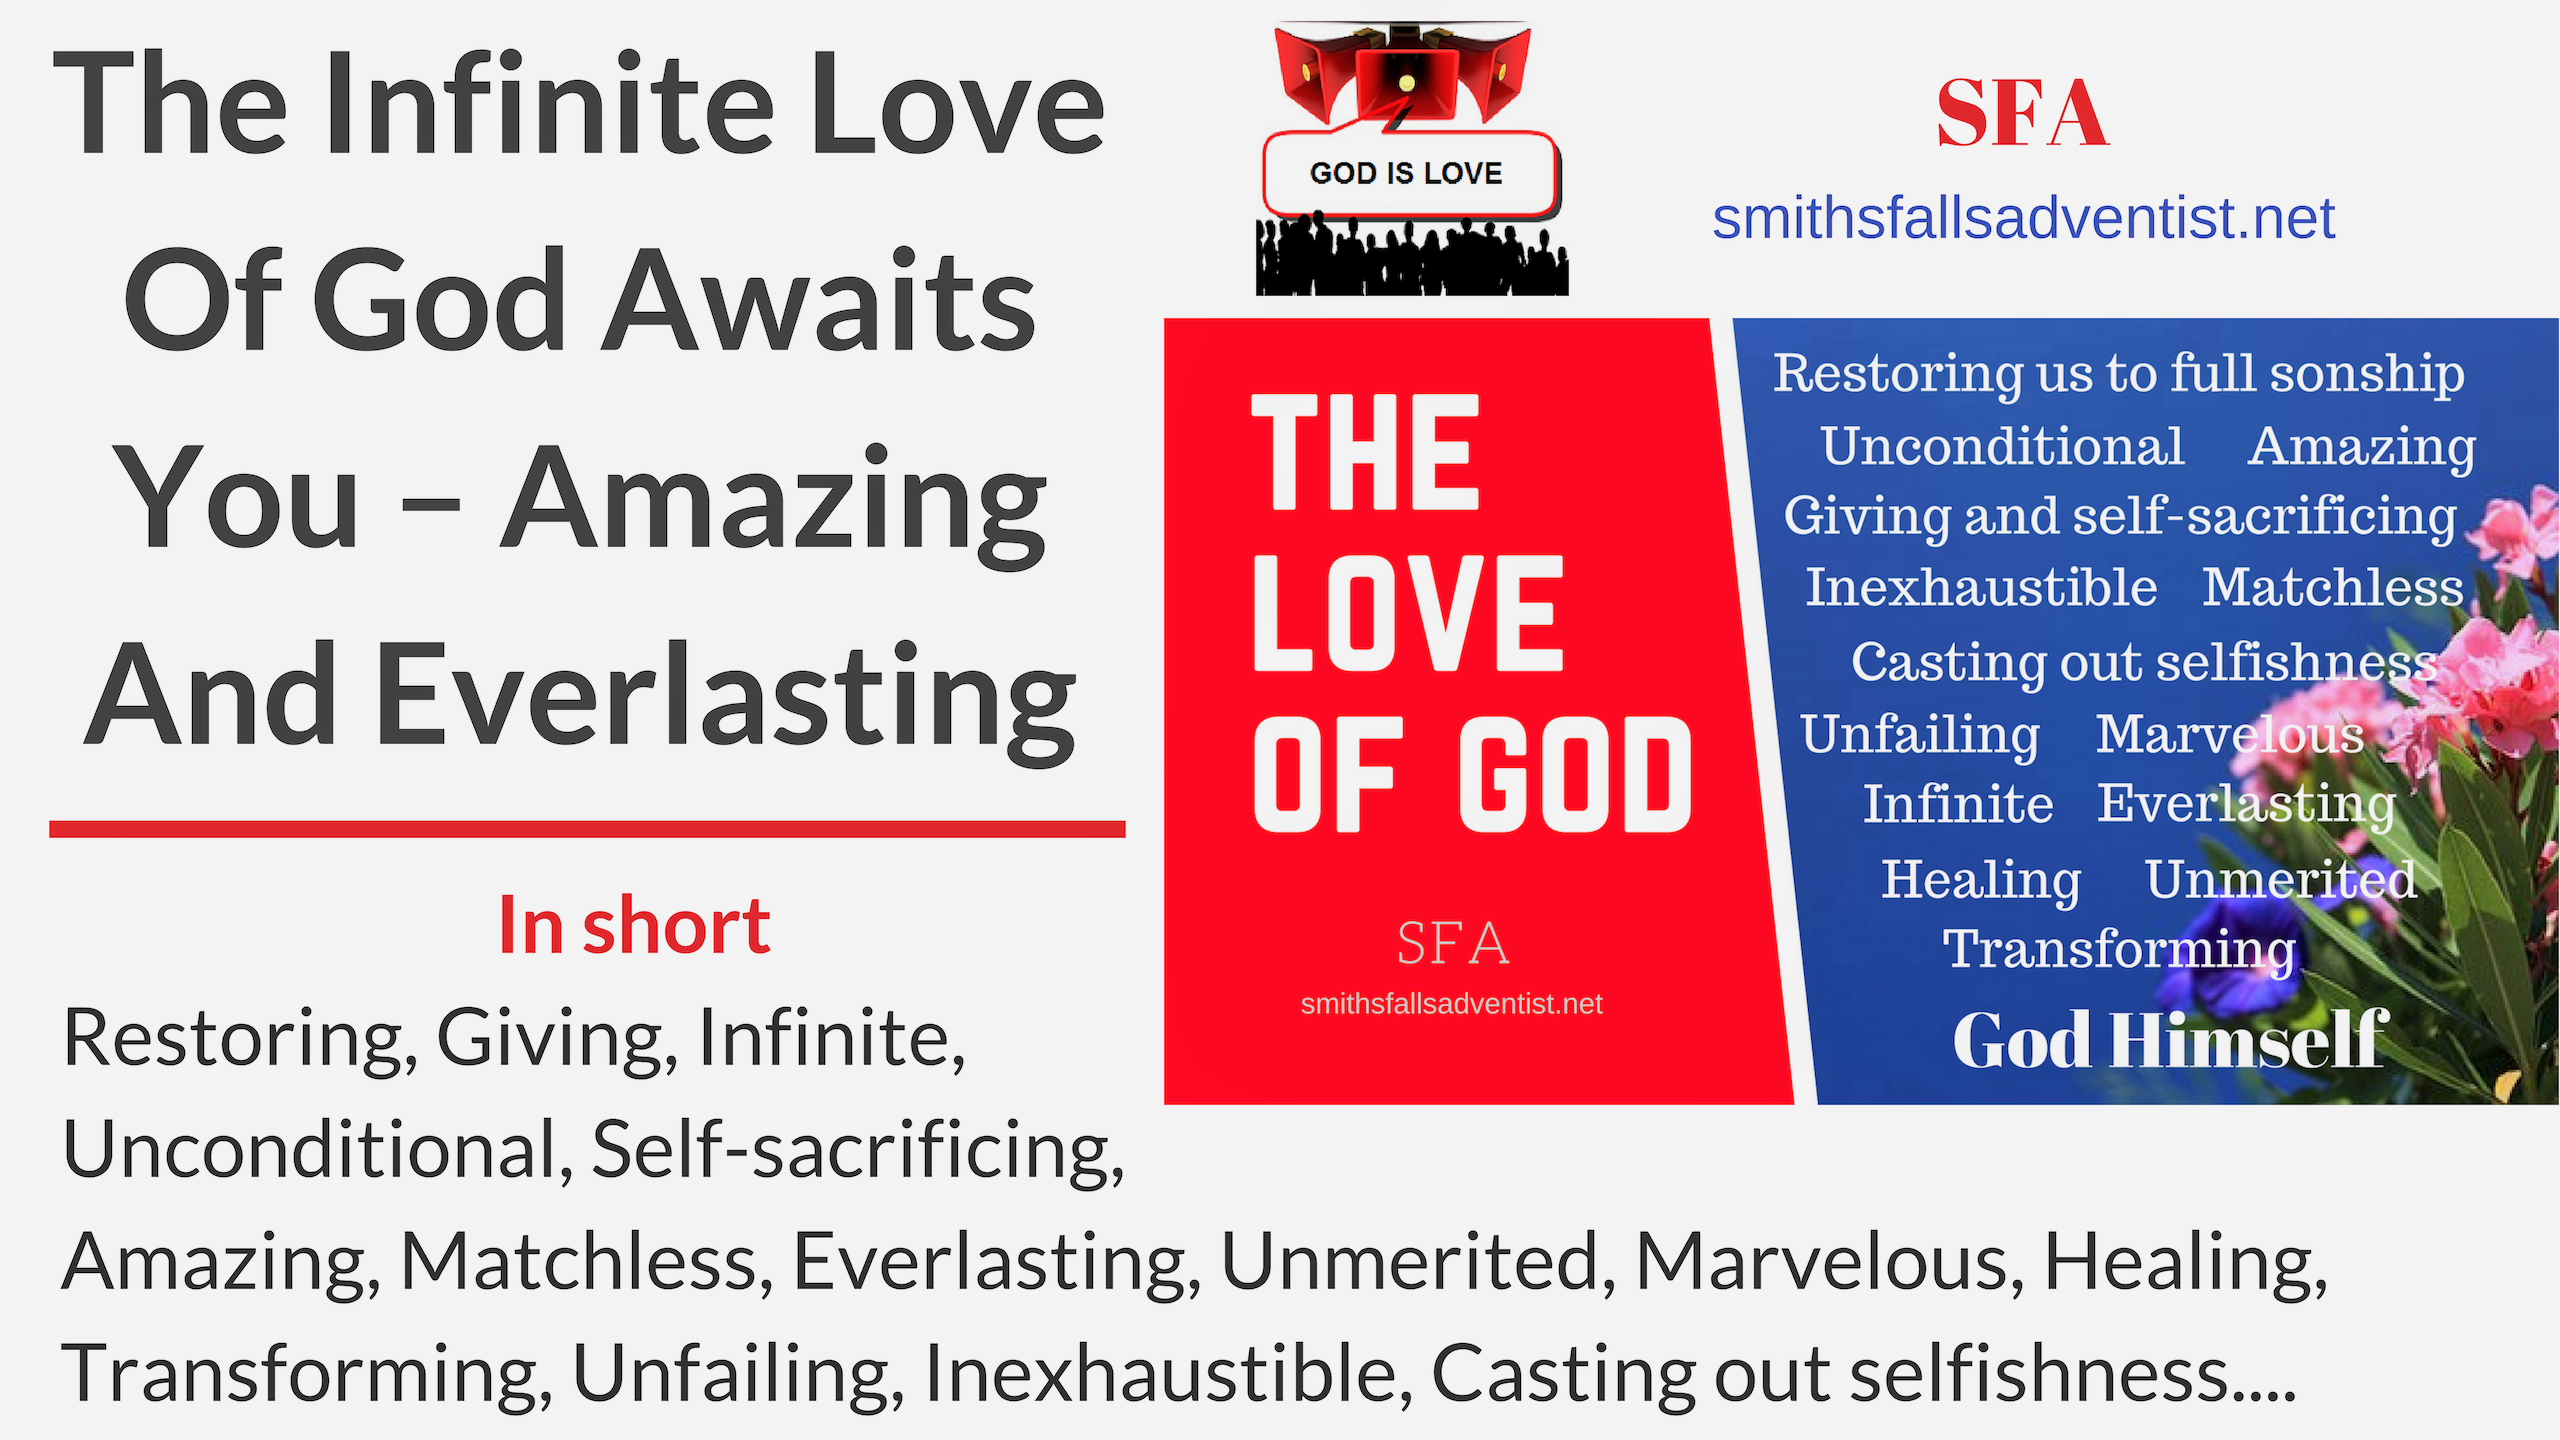 Title-The-Infinite-Love-Of-God-Awaits-You-Amazing-And-Everlasting-text-logo